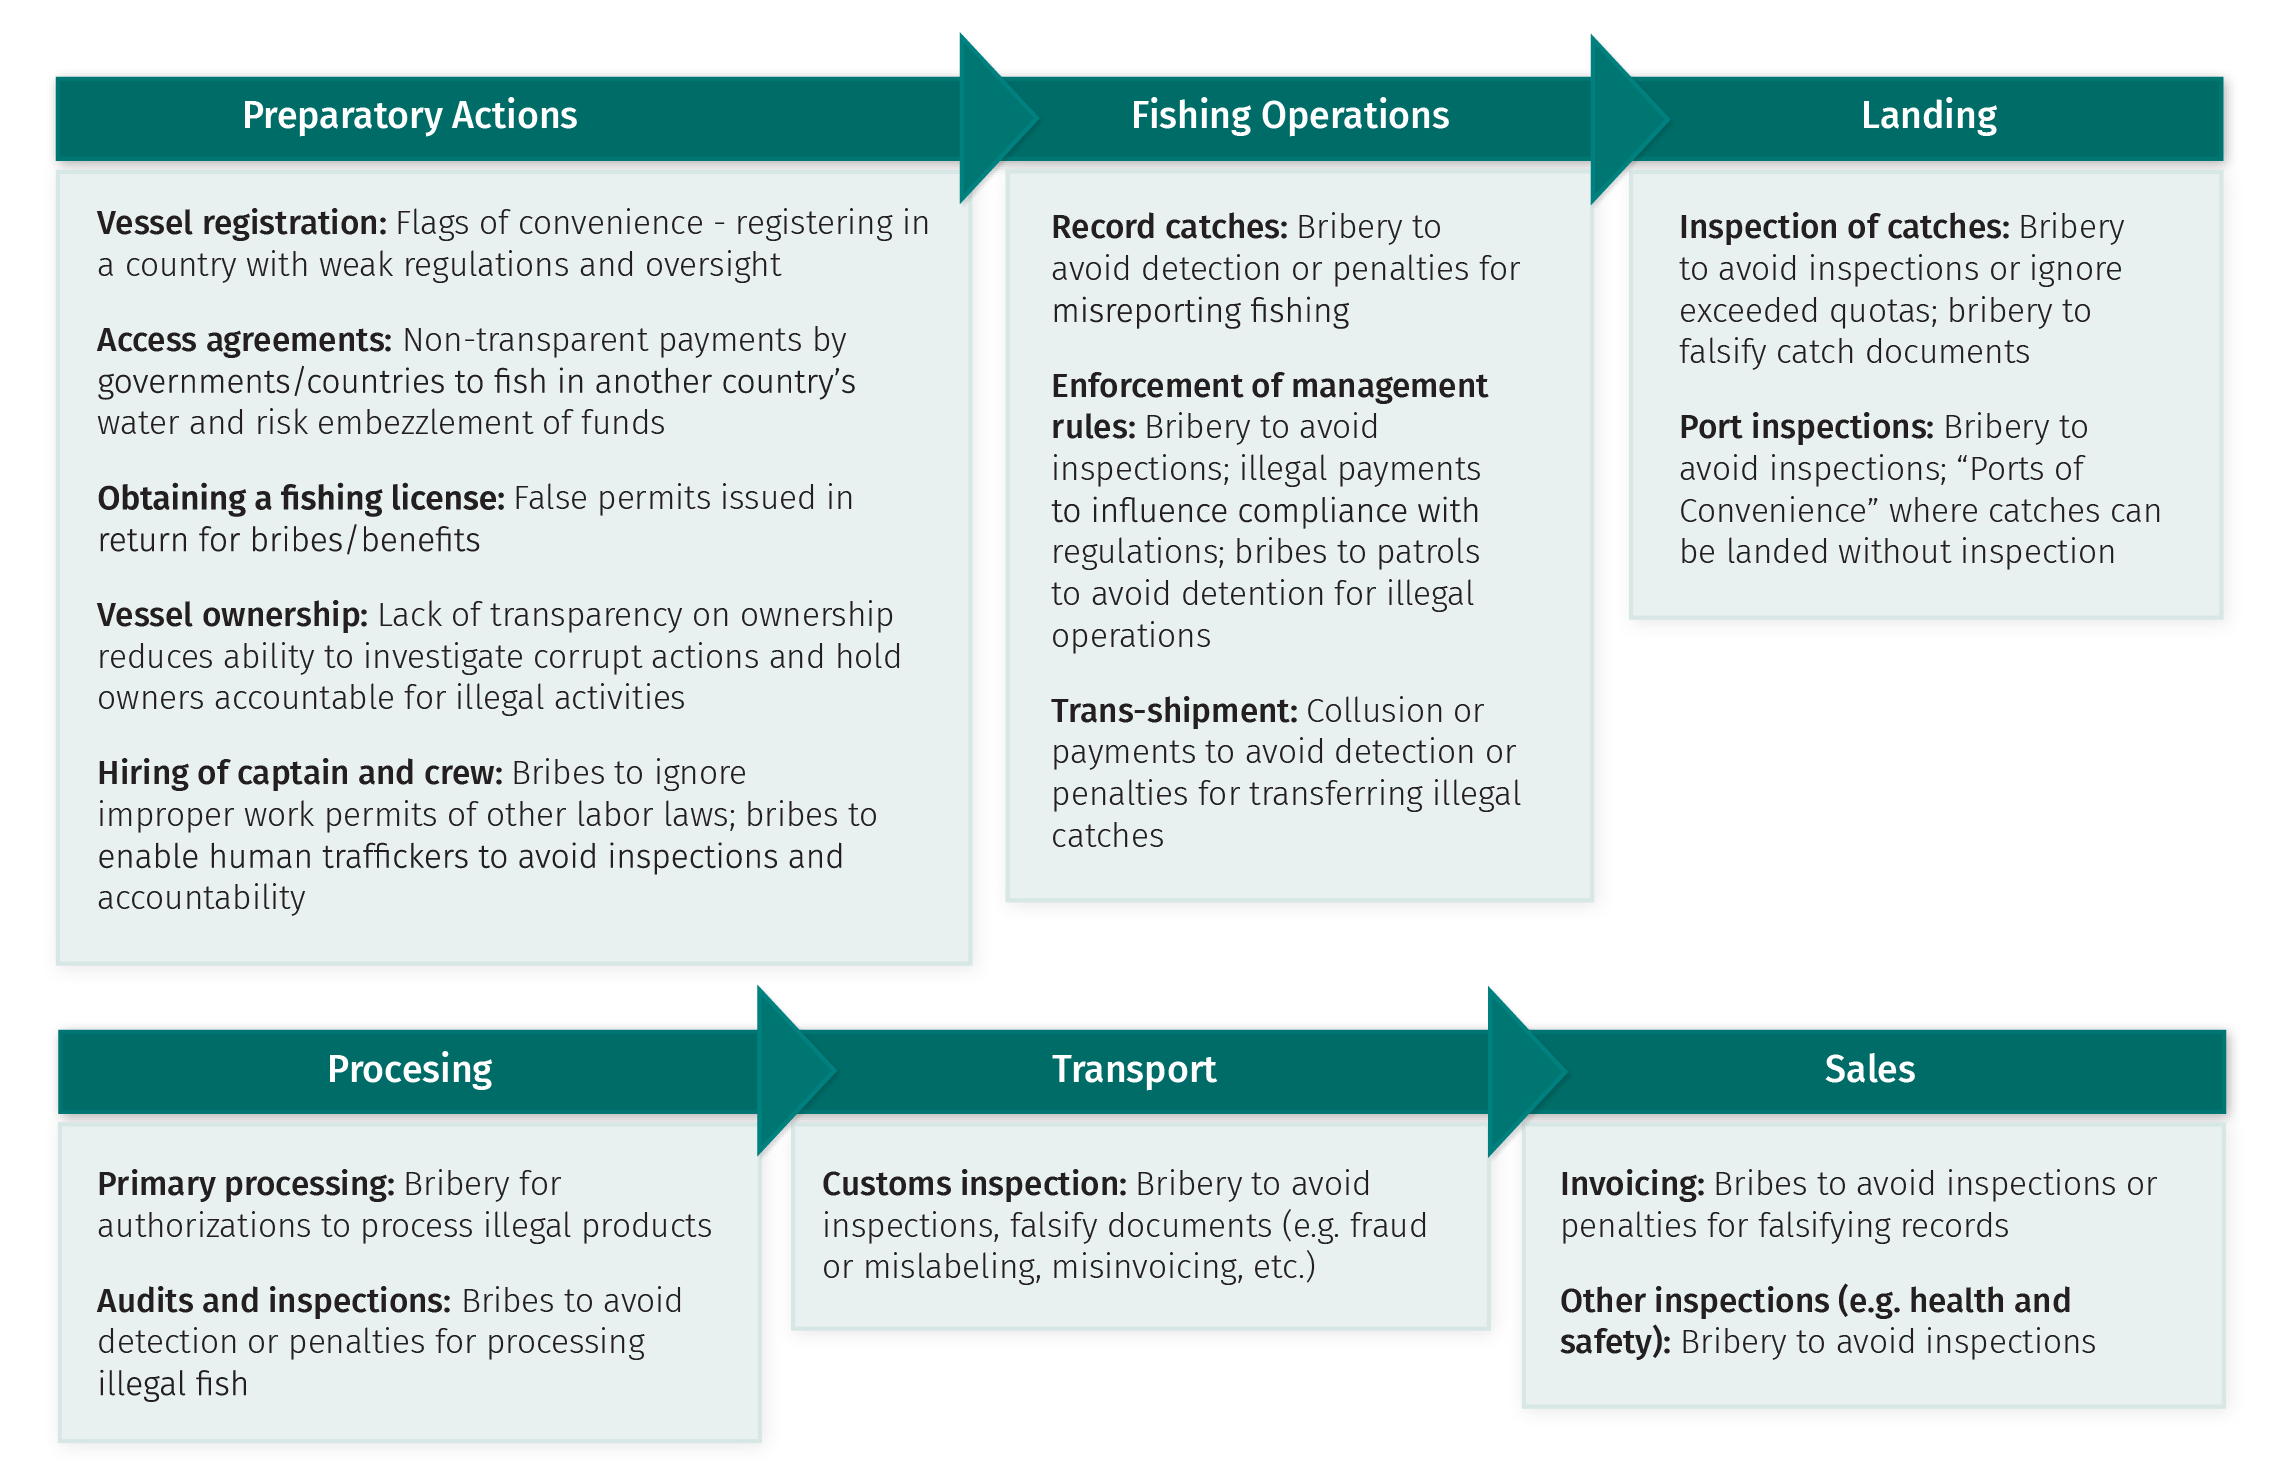 Figure 1. Corruption Risks along the Seafood Supply Chain